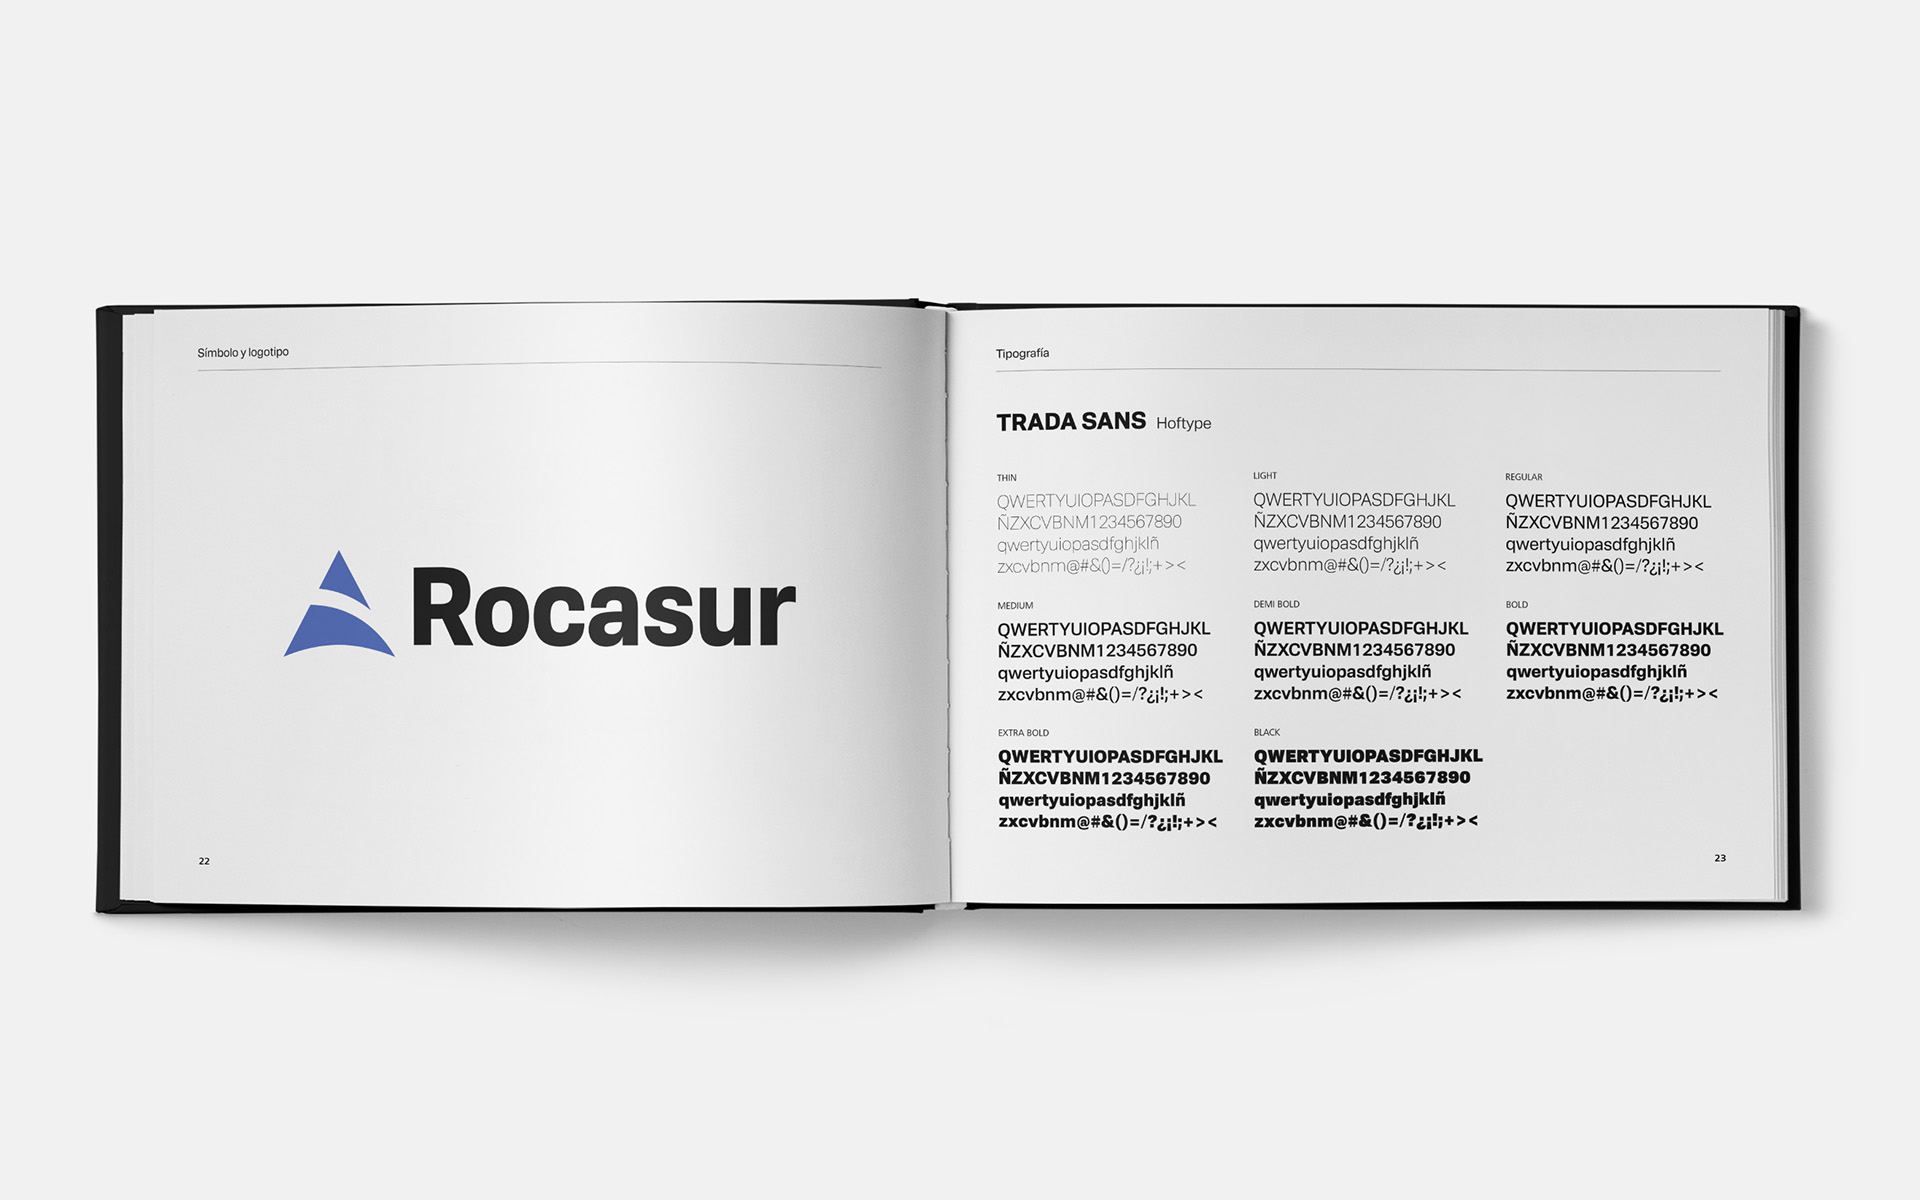 manual de marca Rocasur